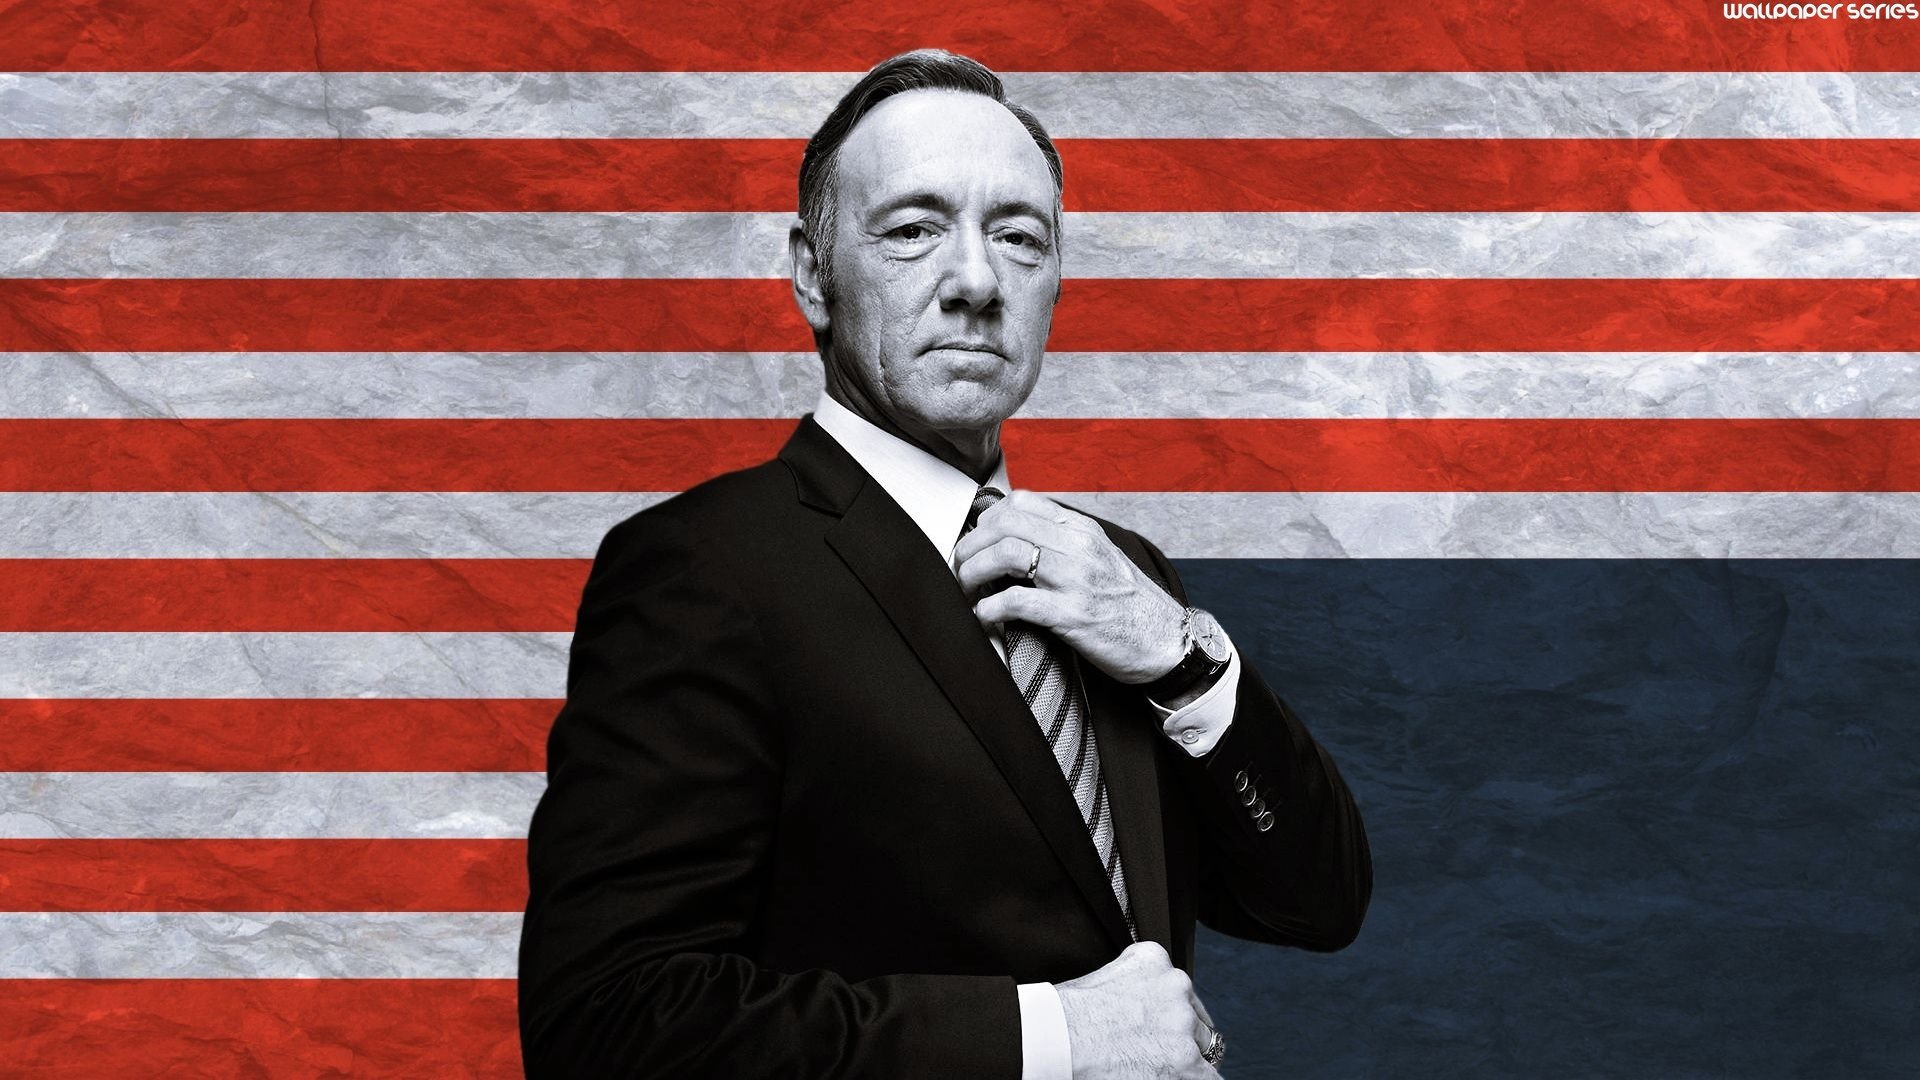 Kevin Spacey as Frank Underwood in Netflix's House of Cards